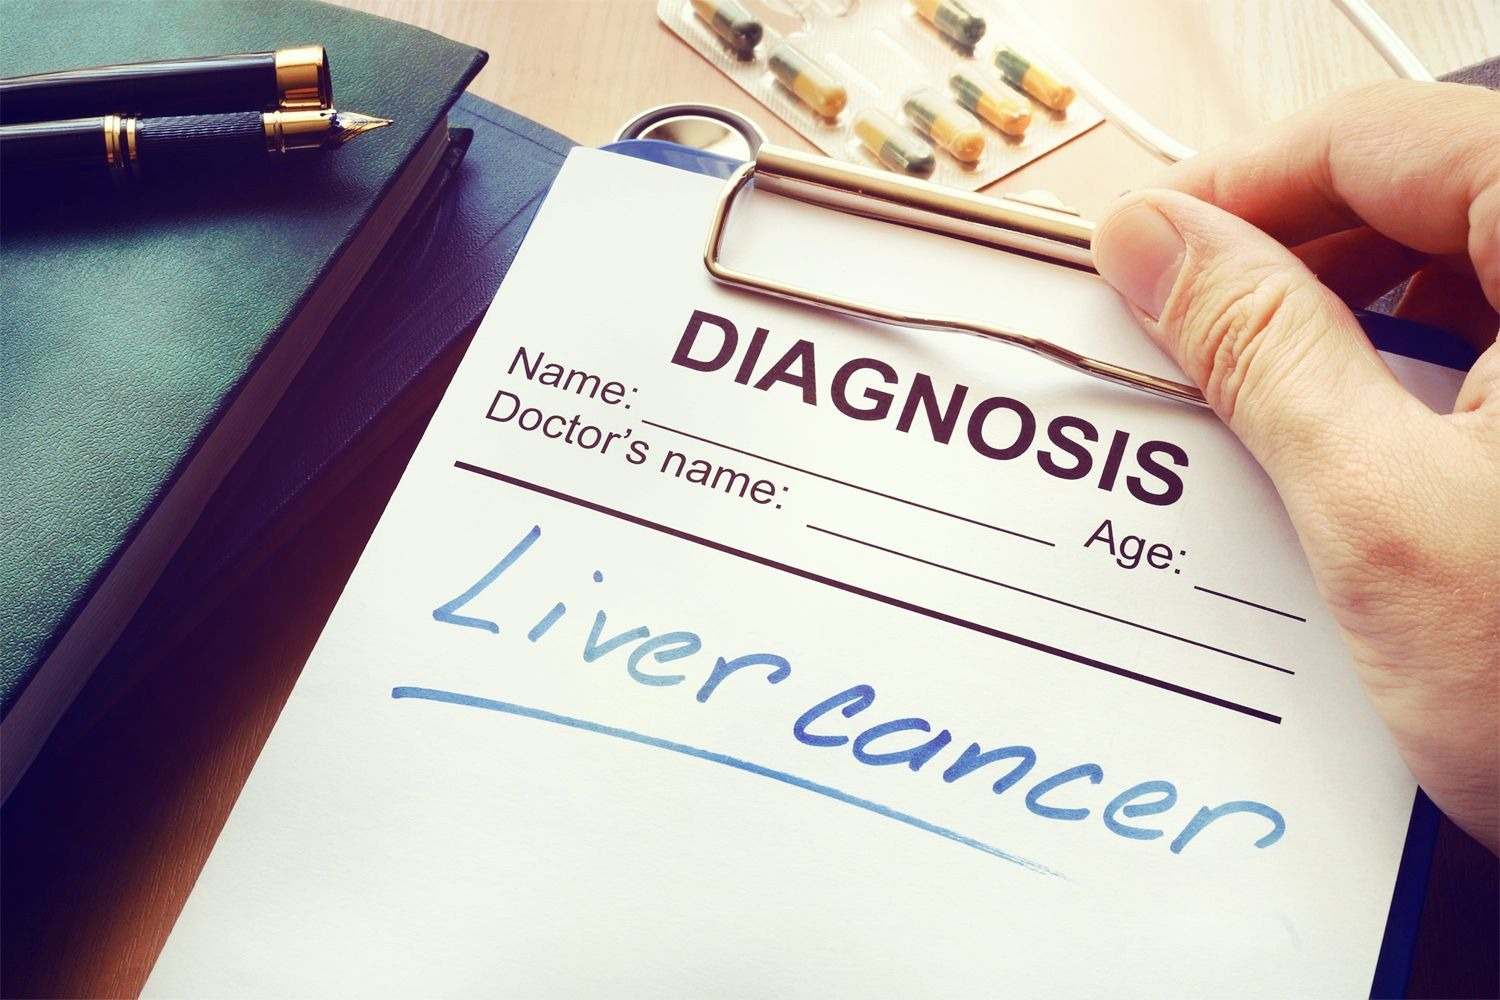 Diagnosis: Liver Cancer